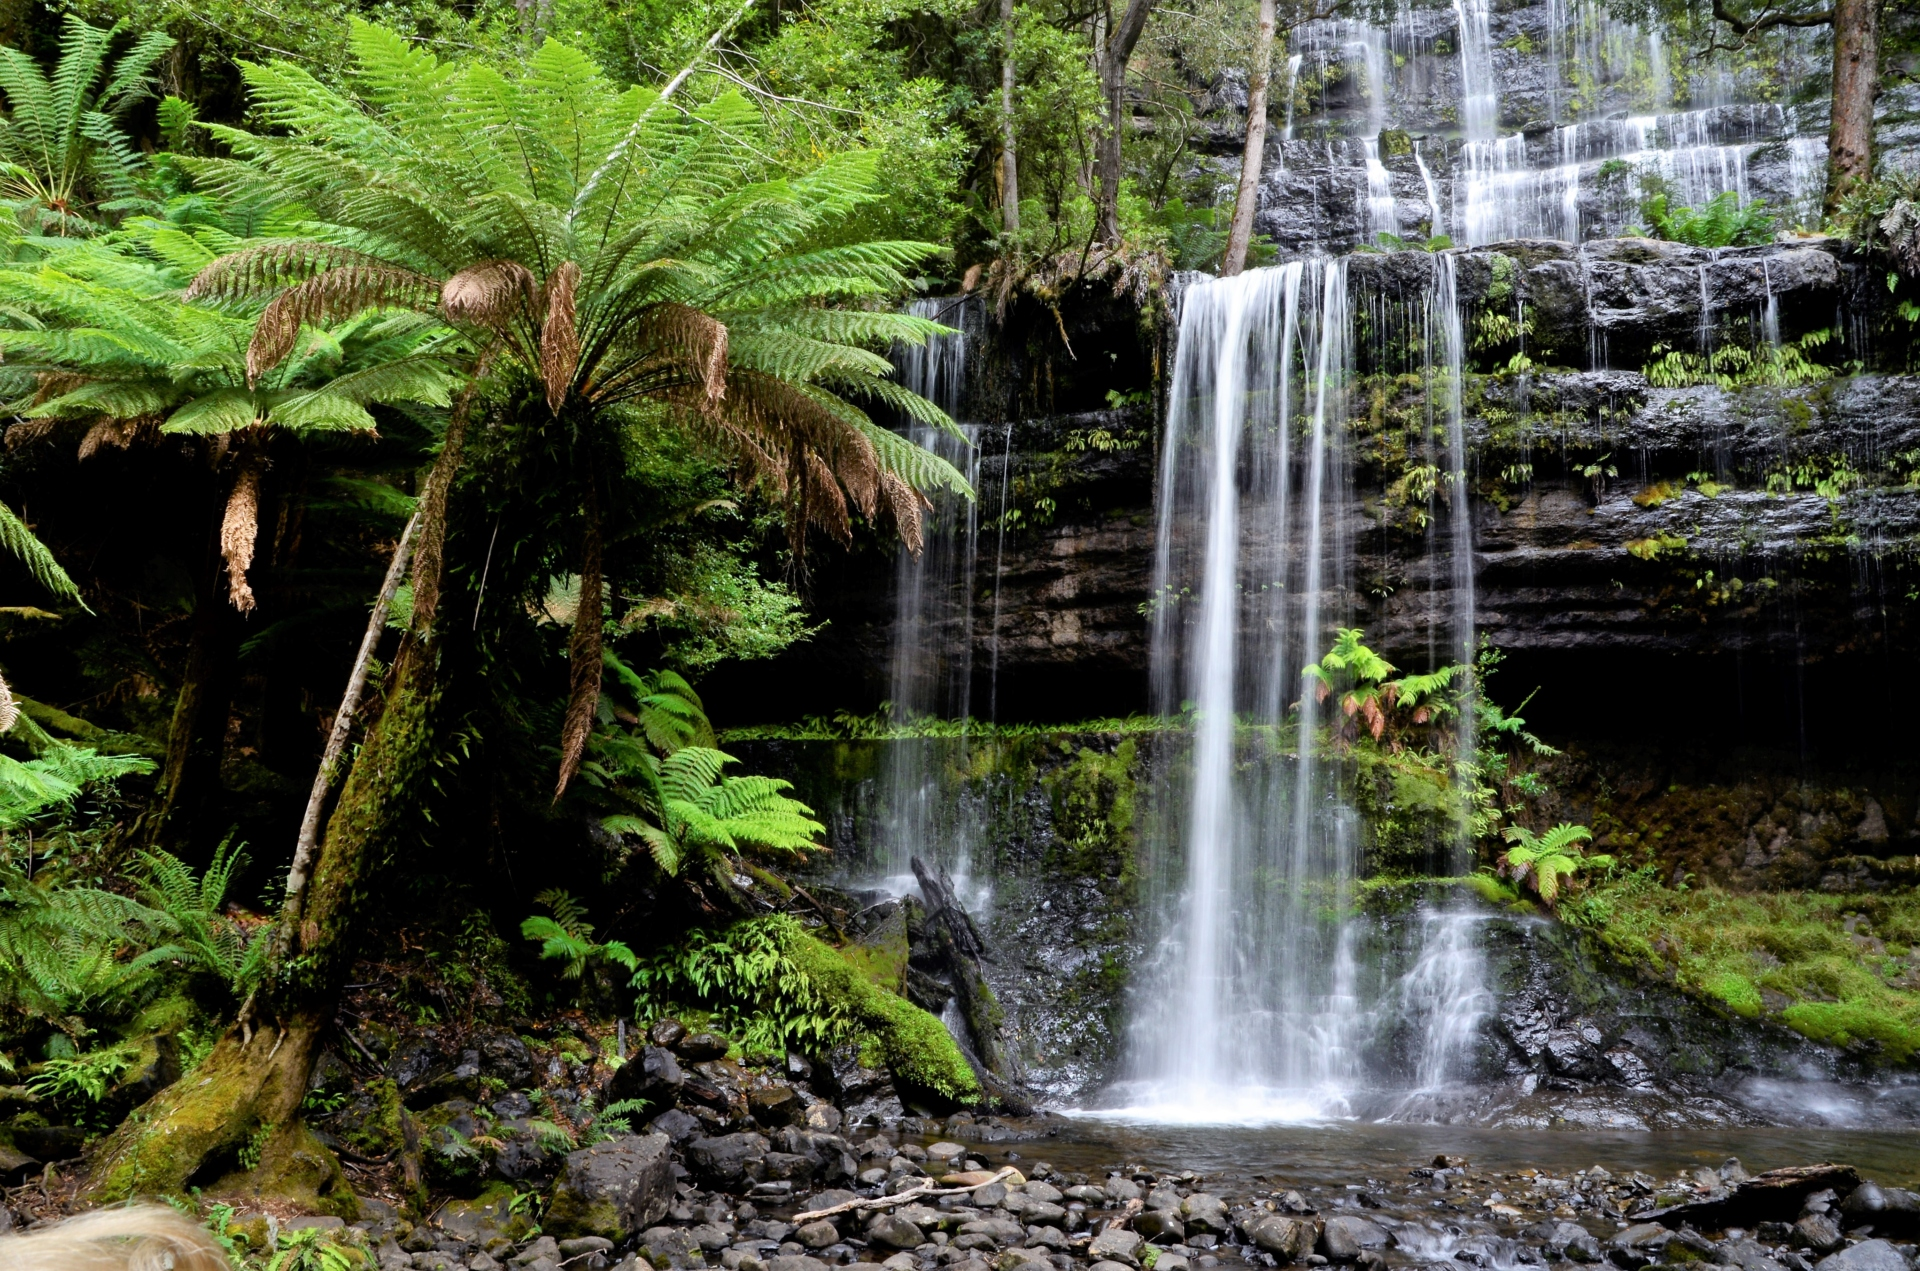 Russell Falls is a tiered cascade waterfall in Tasmania's Mount Field National Park. Source: Ian Smith